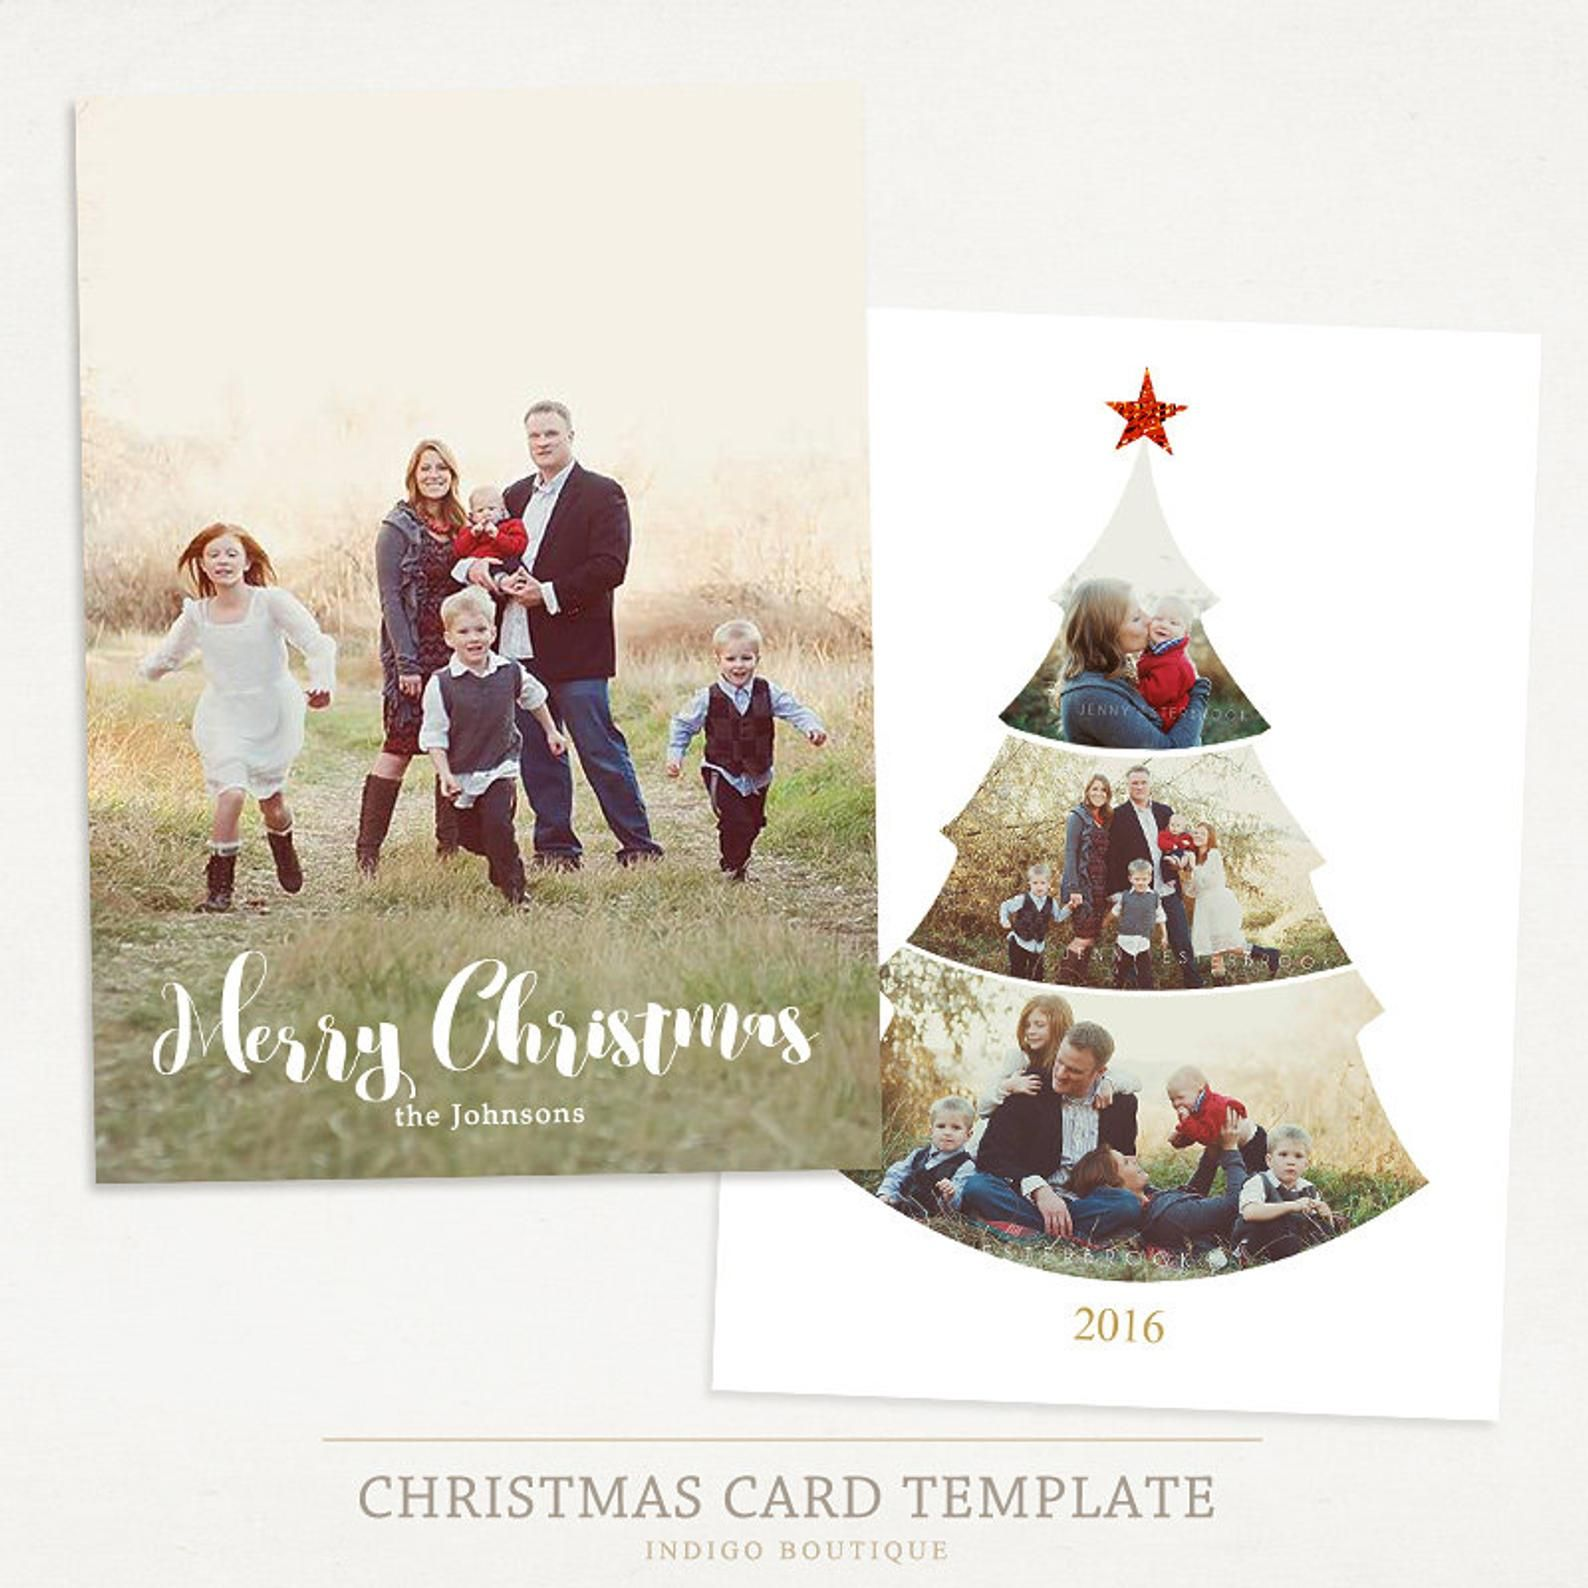 Christmas Card Template For Photographers And Personal Use Etsy Christmas Card Template Holiday Photo Cards Template Christmas Photo Card Template